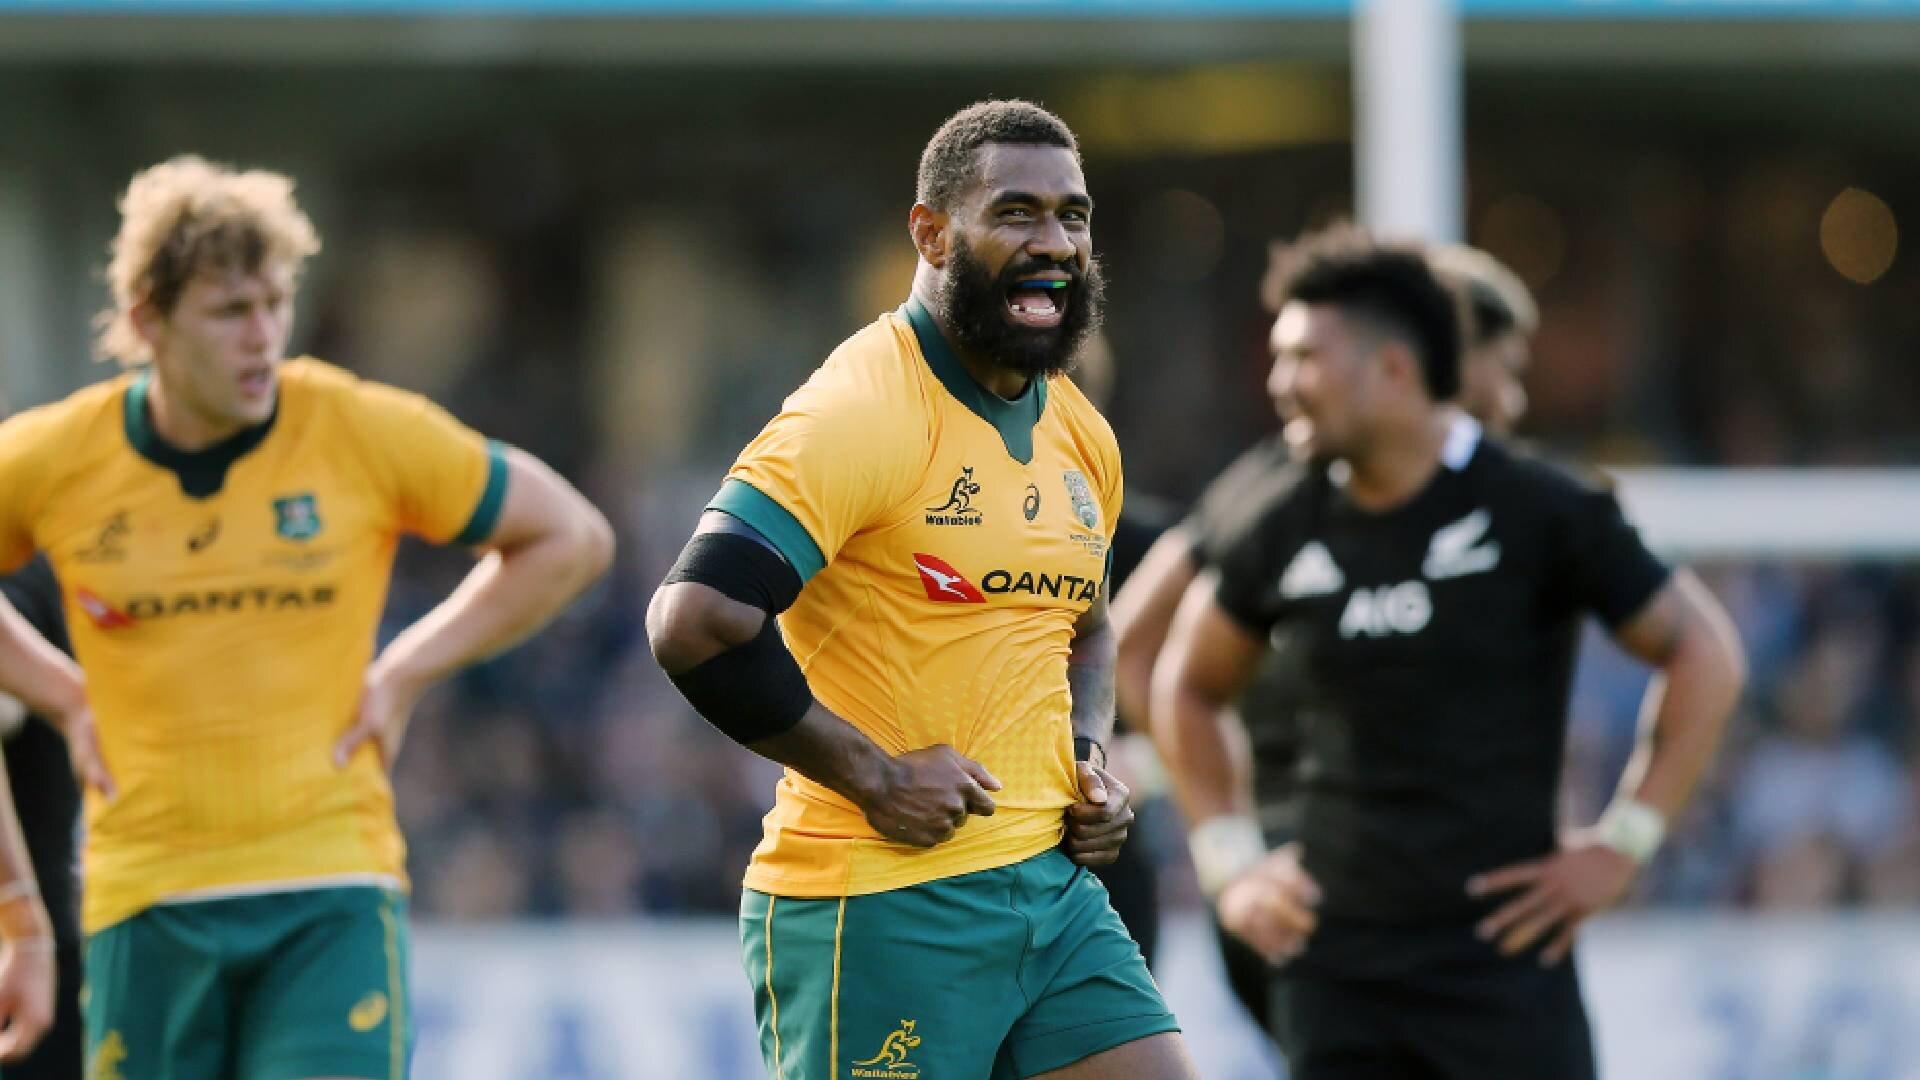 'Selection can fix that': The Wallabies facing the chopping block following 'diabolical' defensive effort